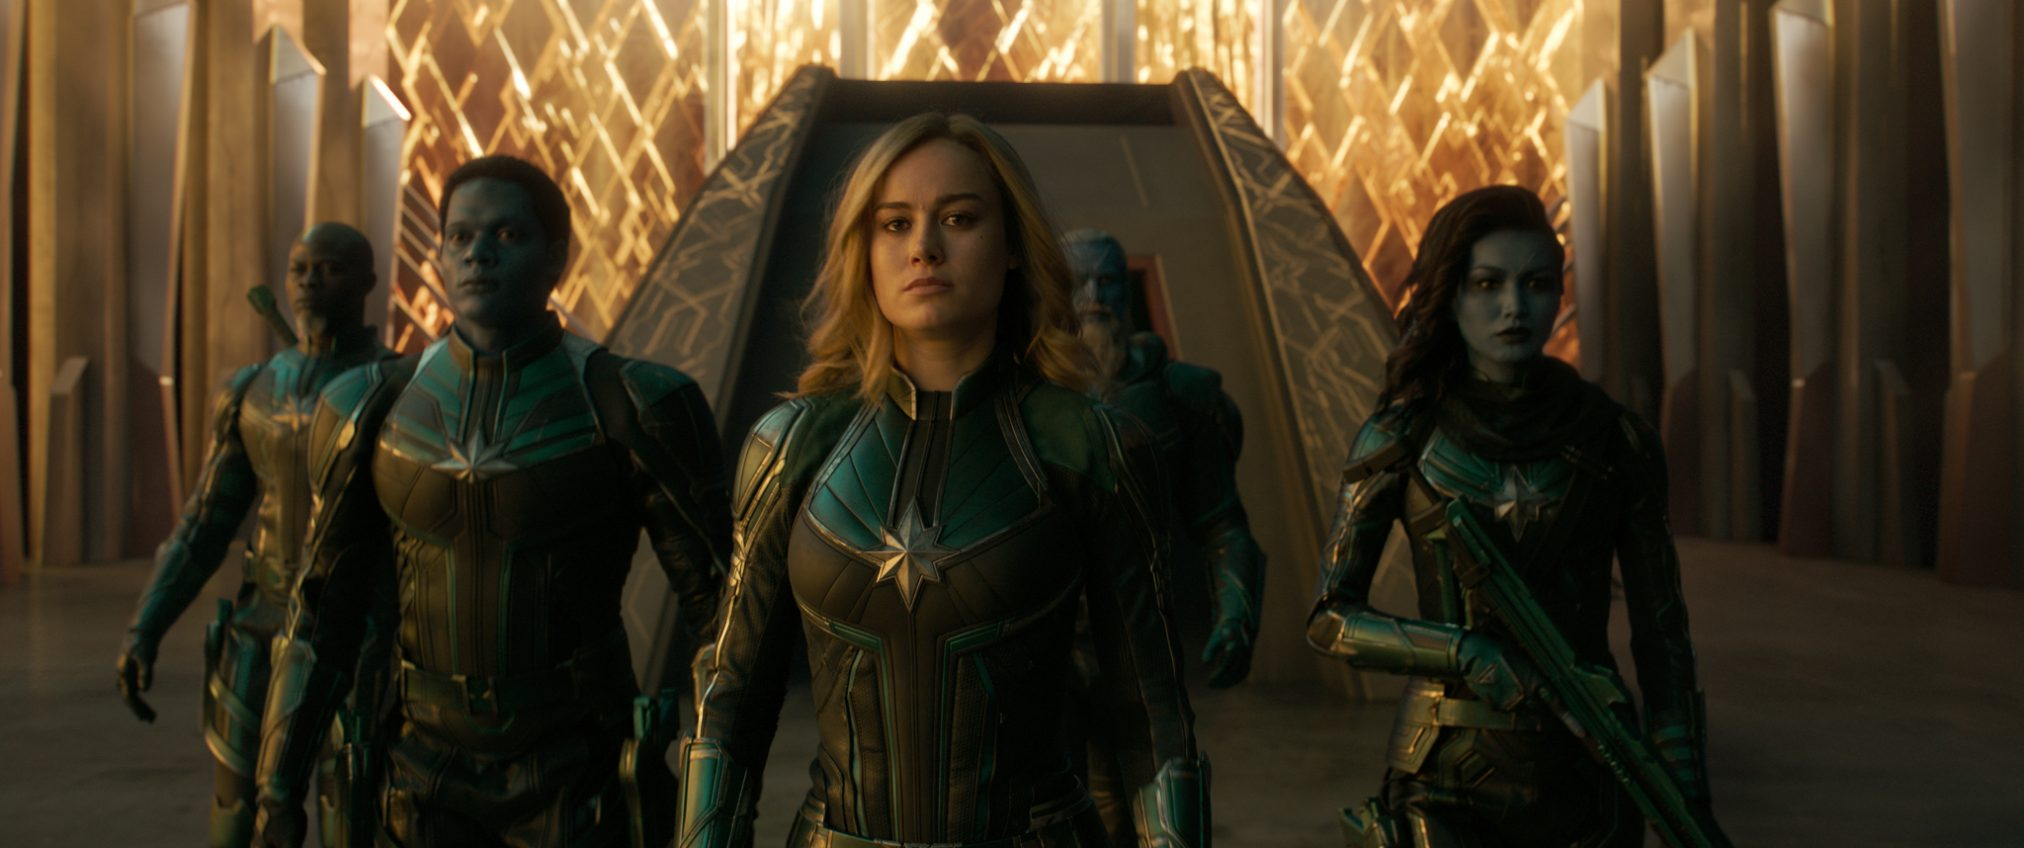 Captain Marvel is coming to Digital and Blu-Ray! Don't miss it! #CaptainMarvel